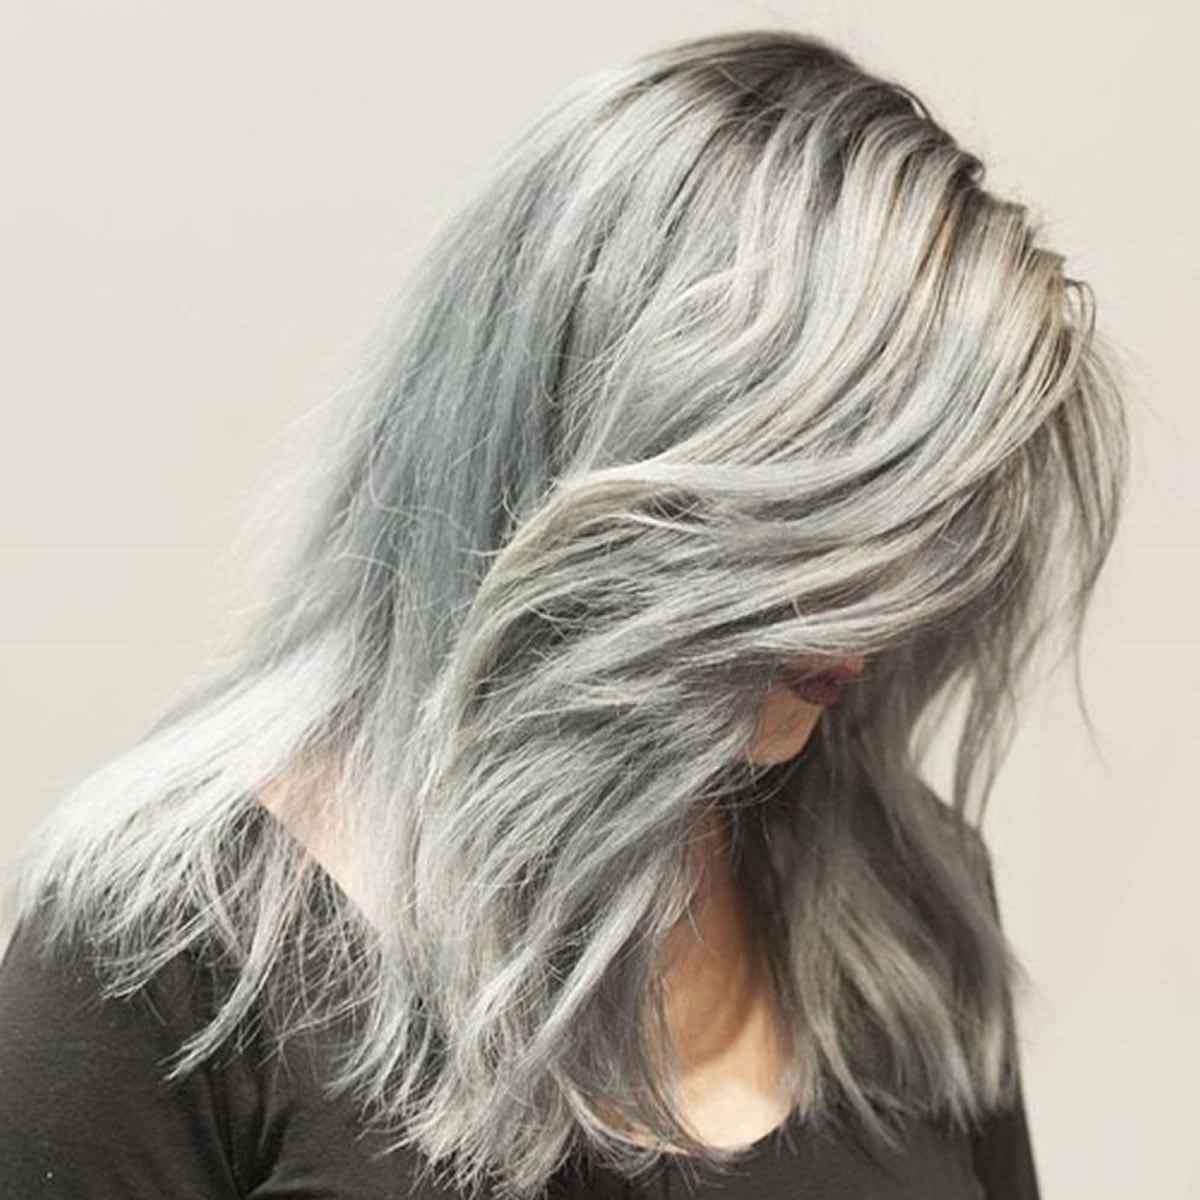 Grey Hair Styles Pictures Grey Hair Trend  20 Glamorous Hairstyles For Women 2018